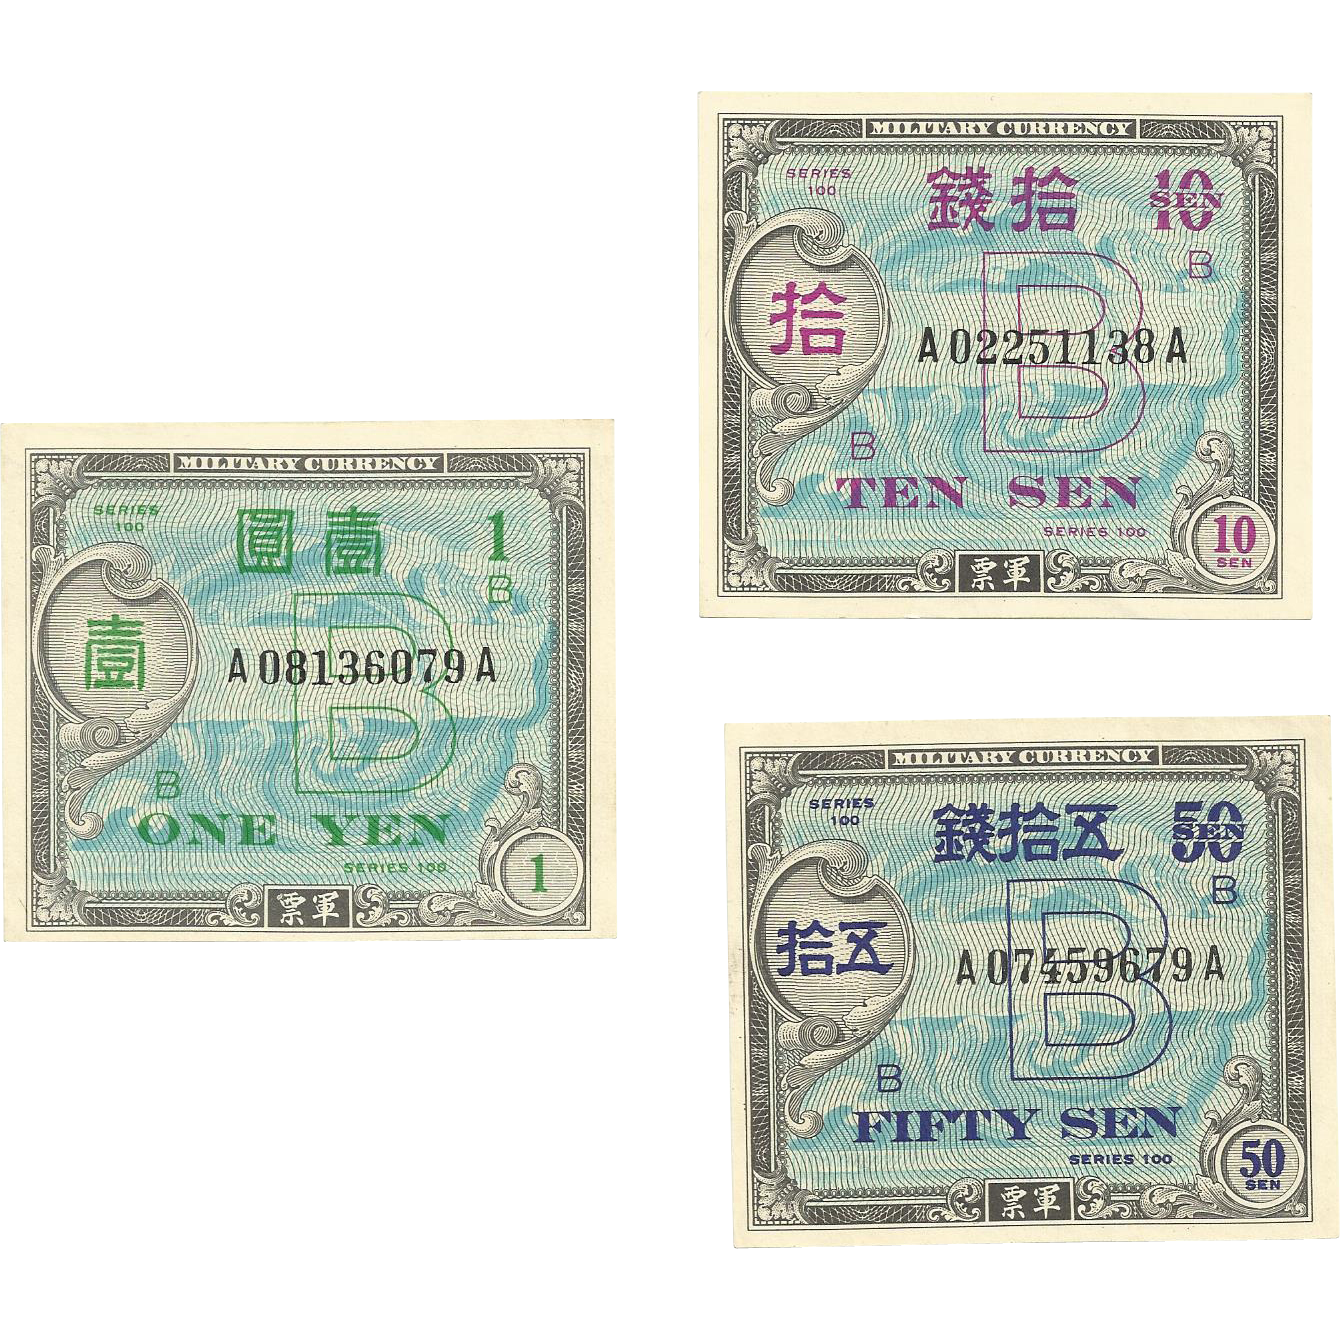 Military Currency from 1945 - One Yen, 10 Sen and Fifty Sen